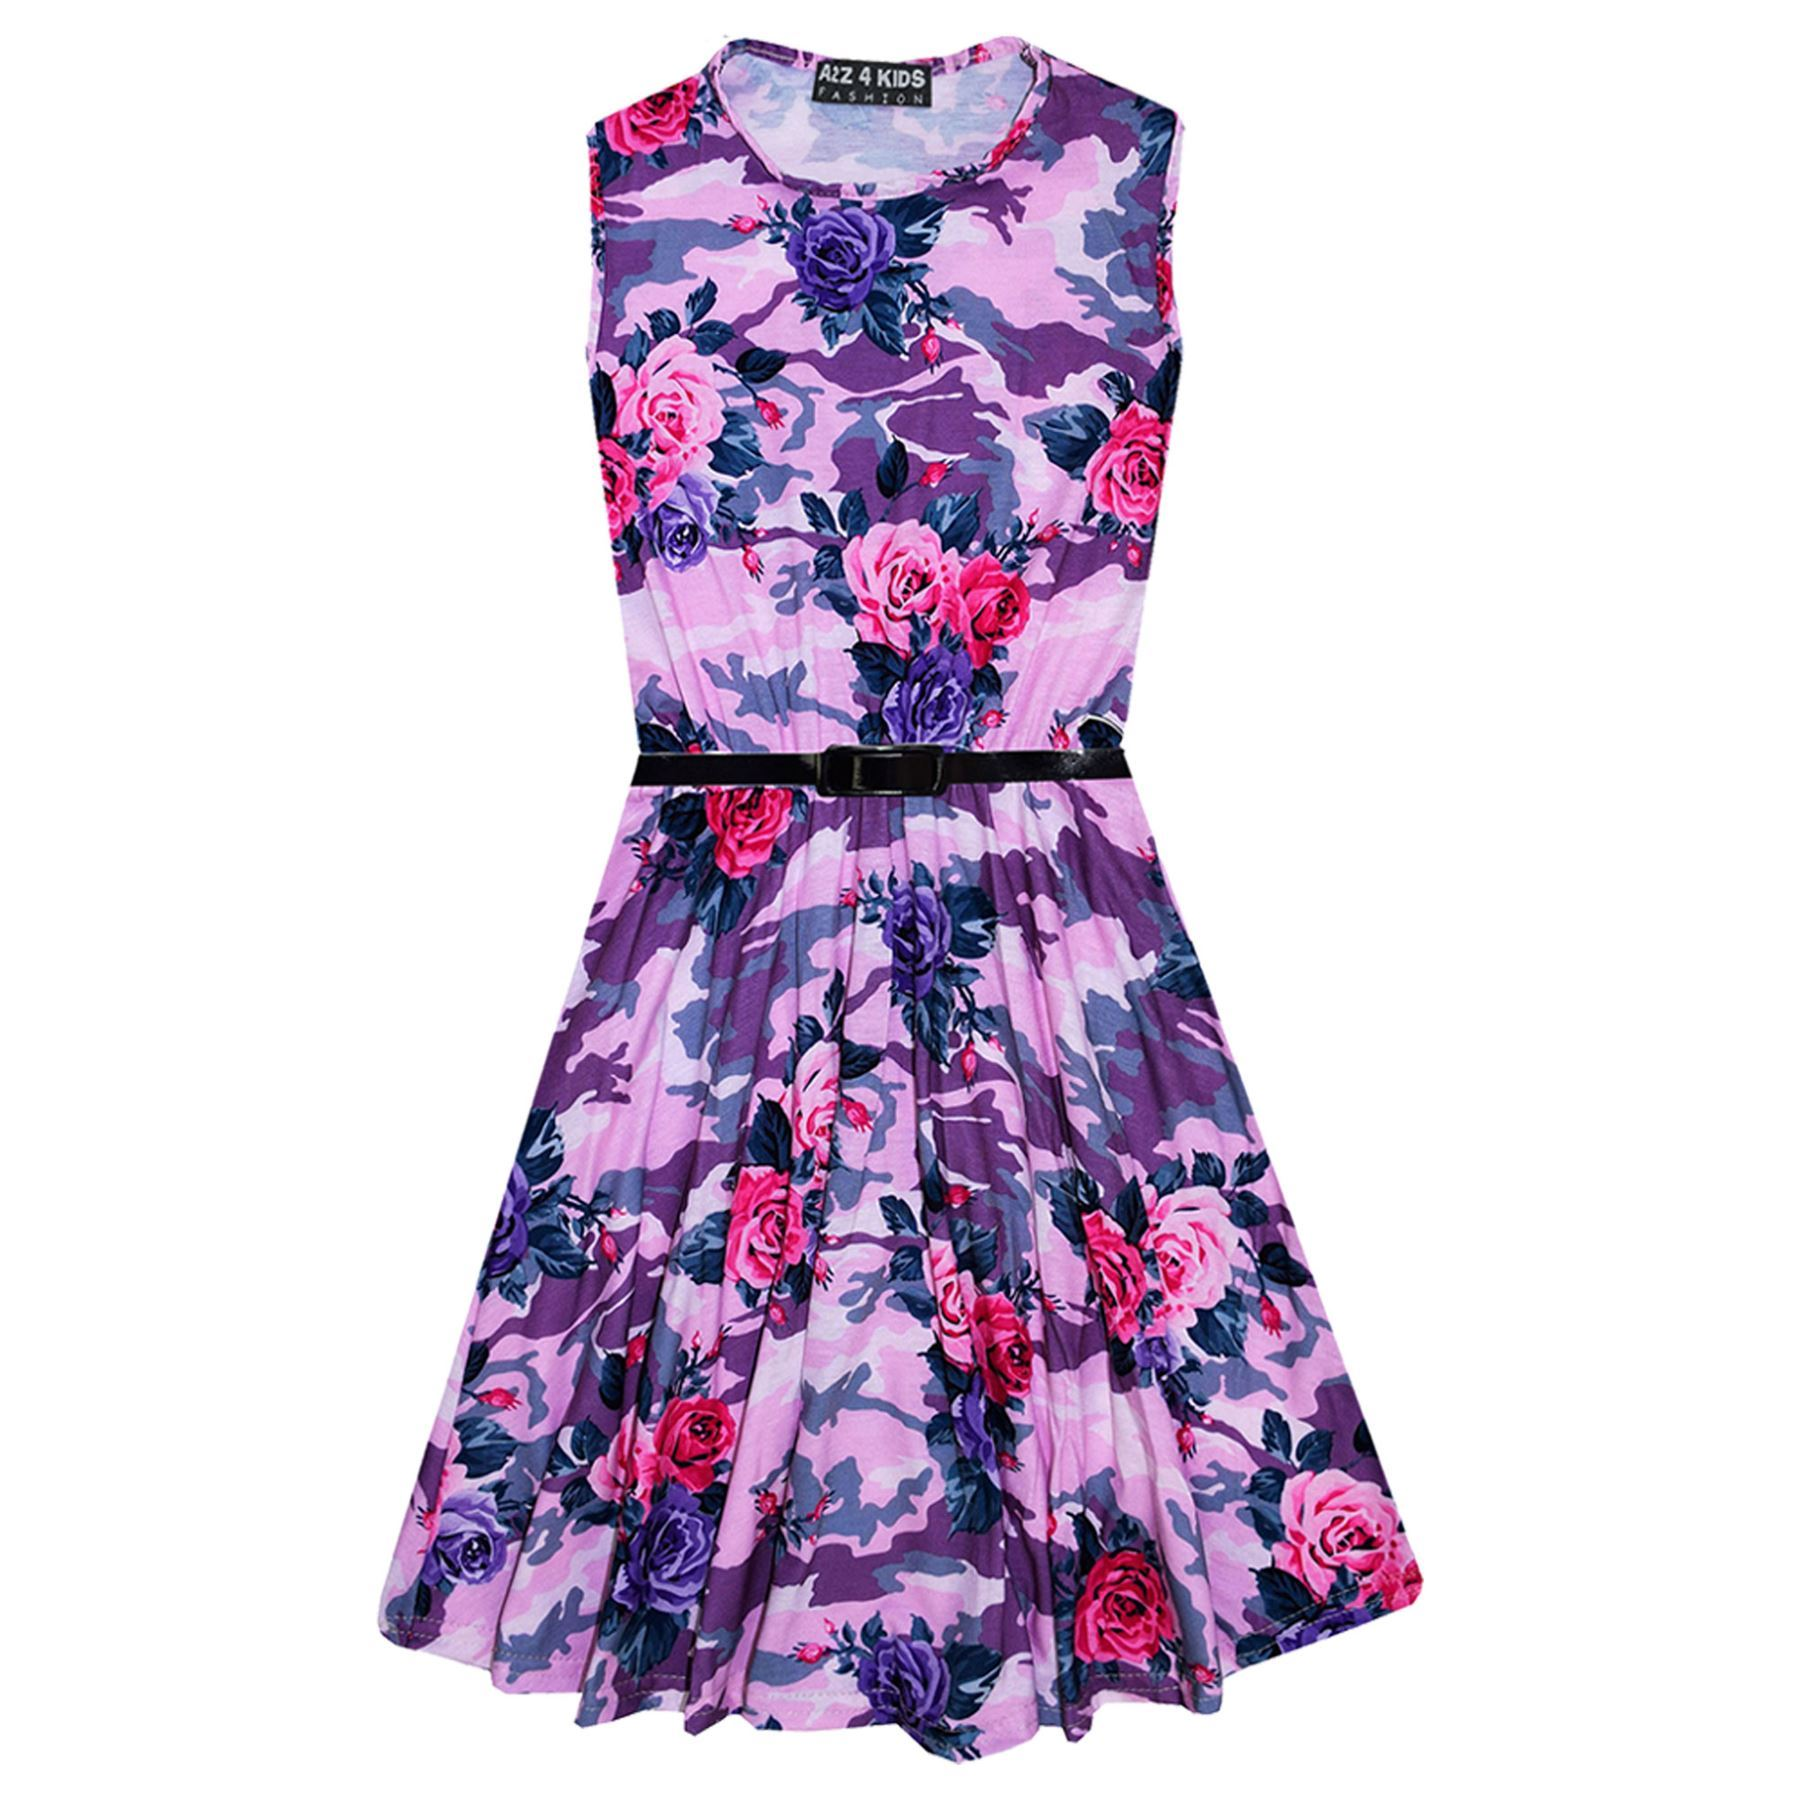 Girls-Skater-Dress-Kids-Camo-Floral-Print-Summer-Party-Dresses-Age-7-13-Years thumbnail 4